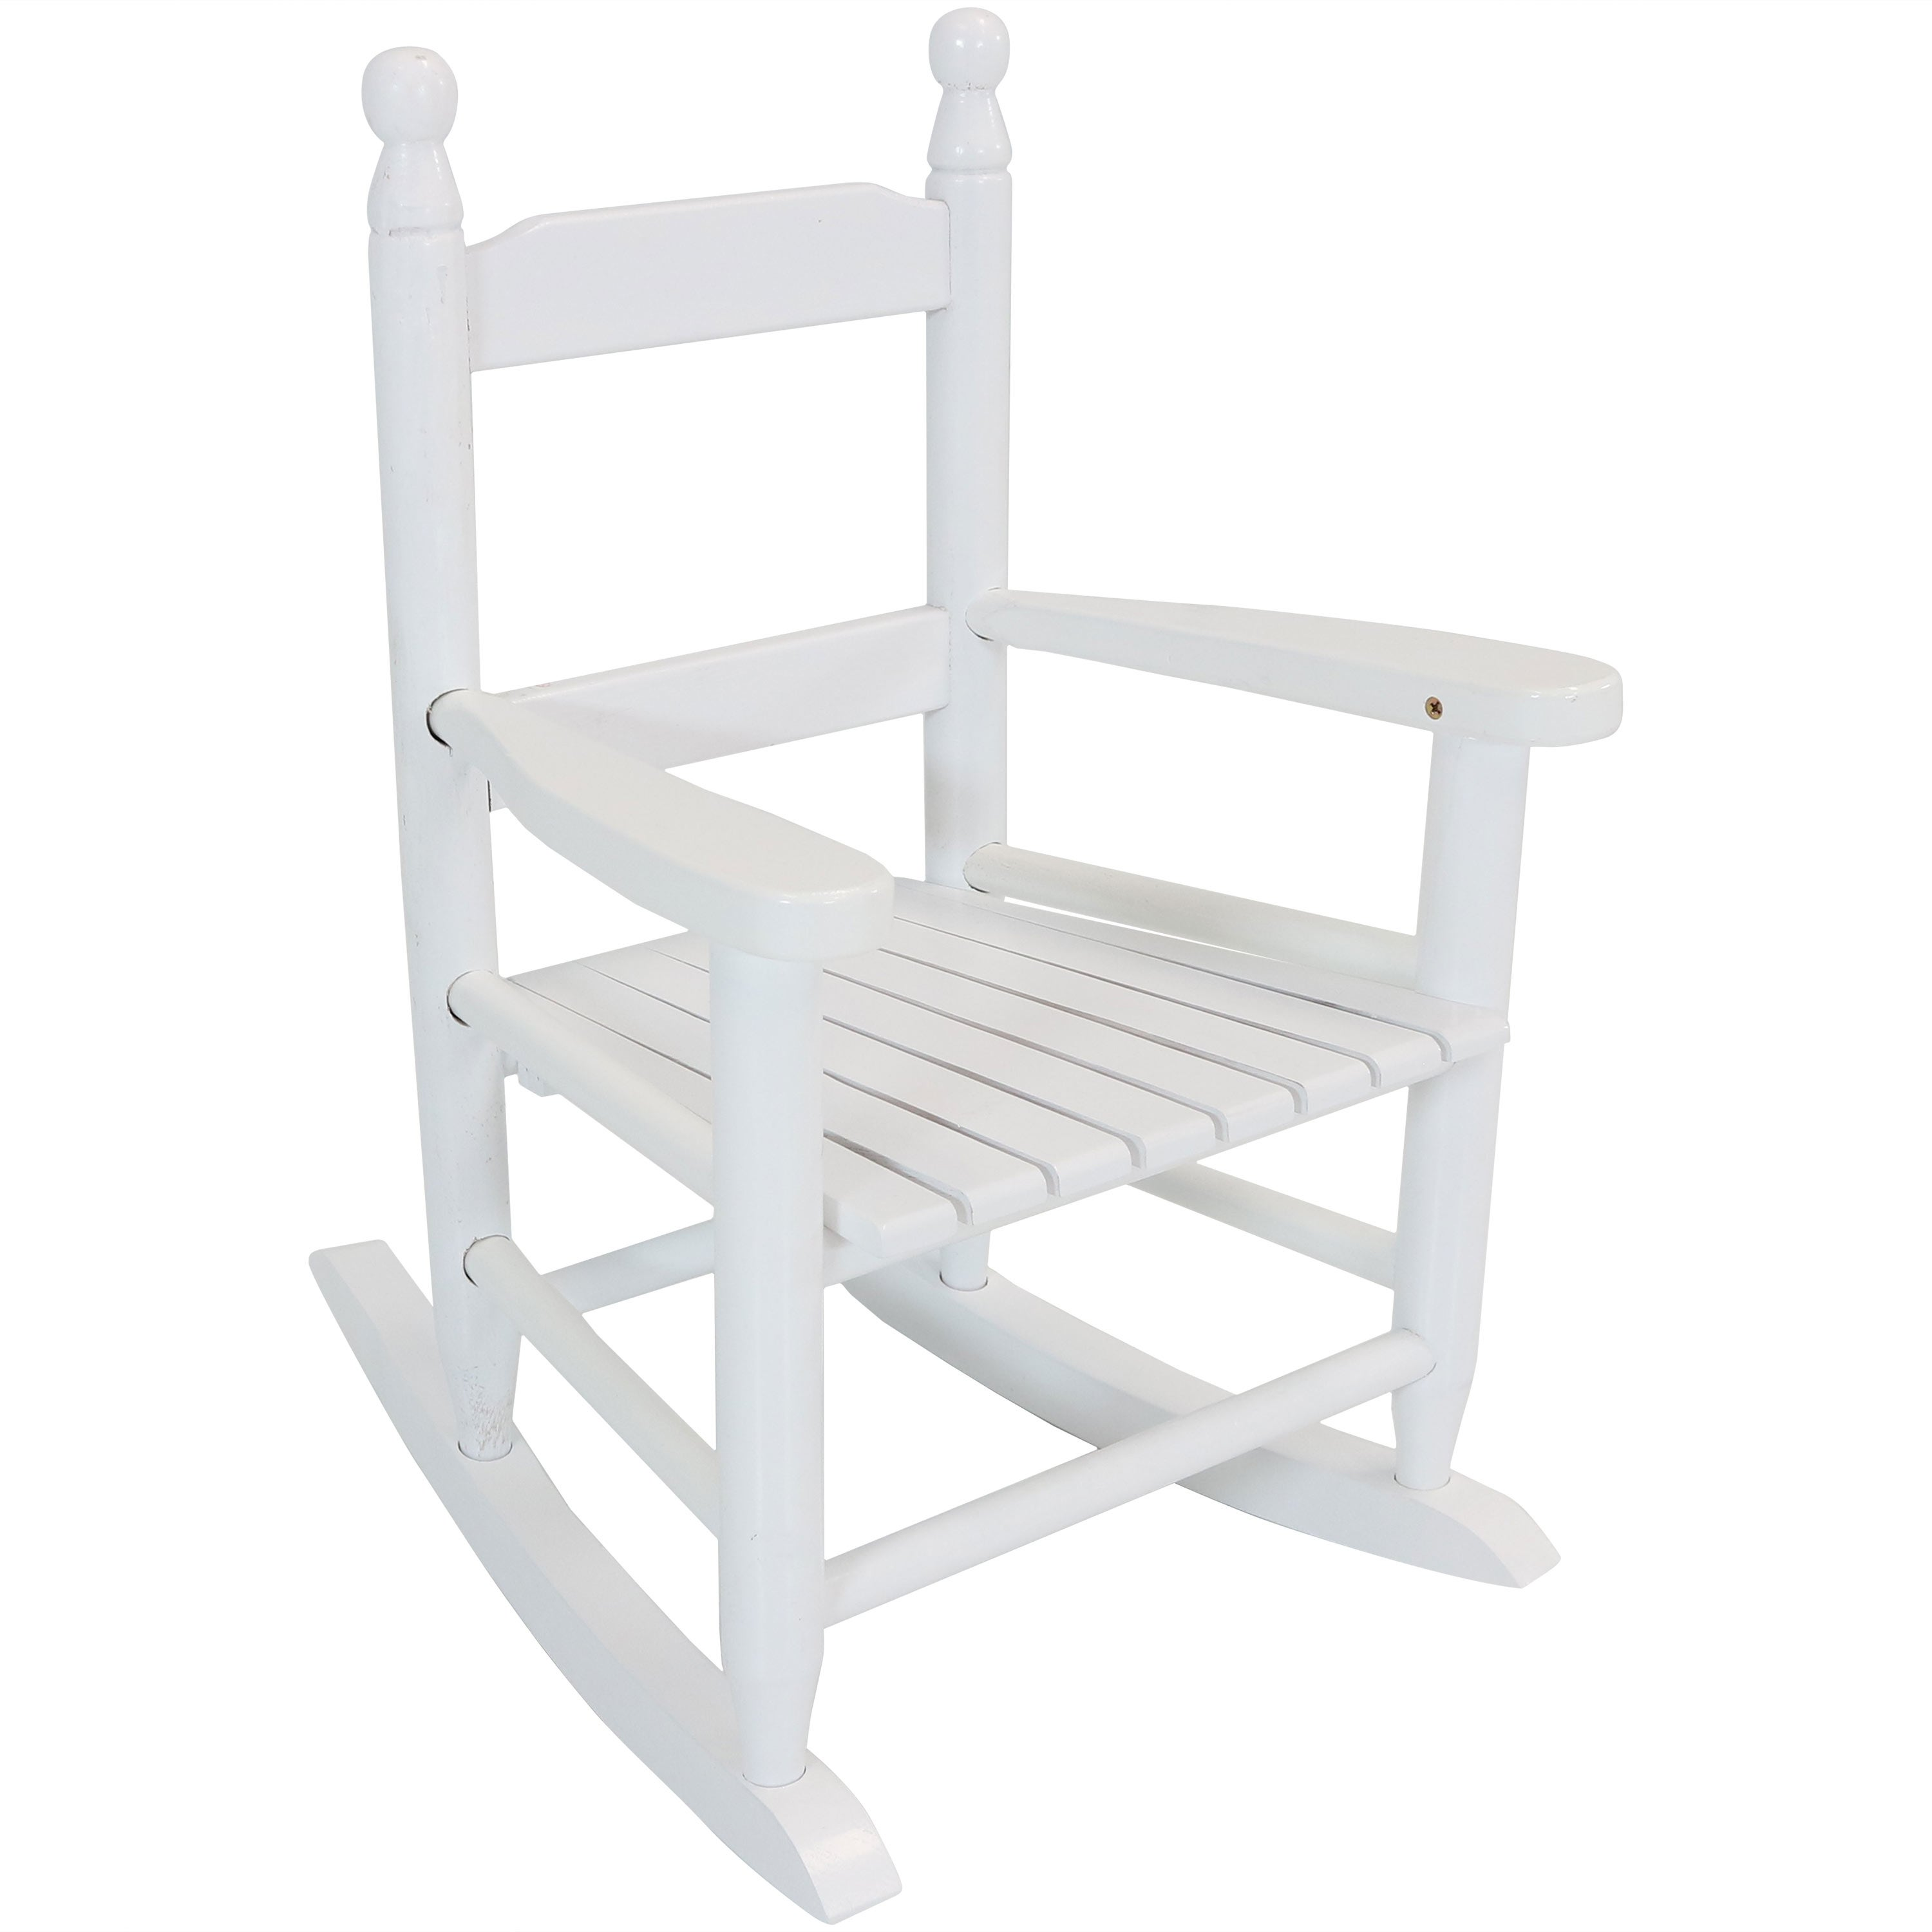 Shop Sunnydaze Toddler Modern Wooden Rocking Chair   Non Toxic Paint    Choose A Color   Free Shipping On Orders Over $45   Overstock.com   22963946